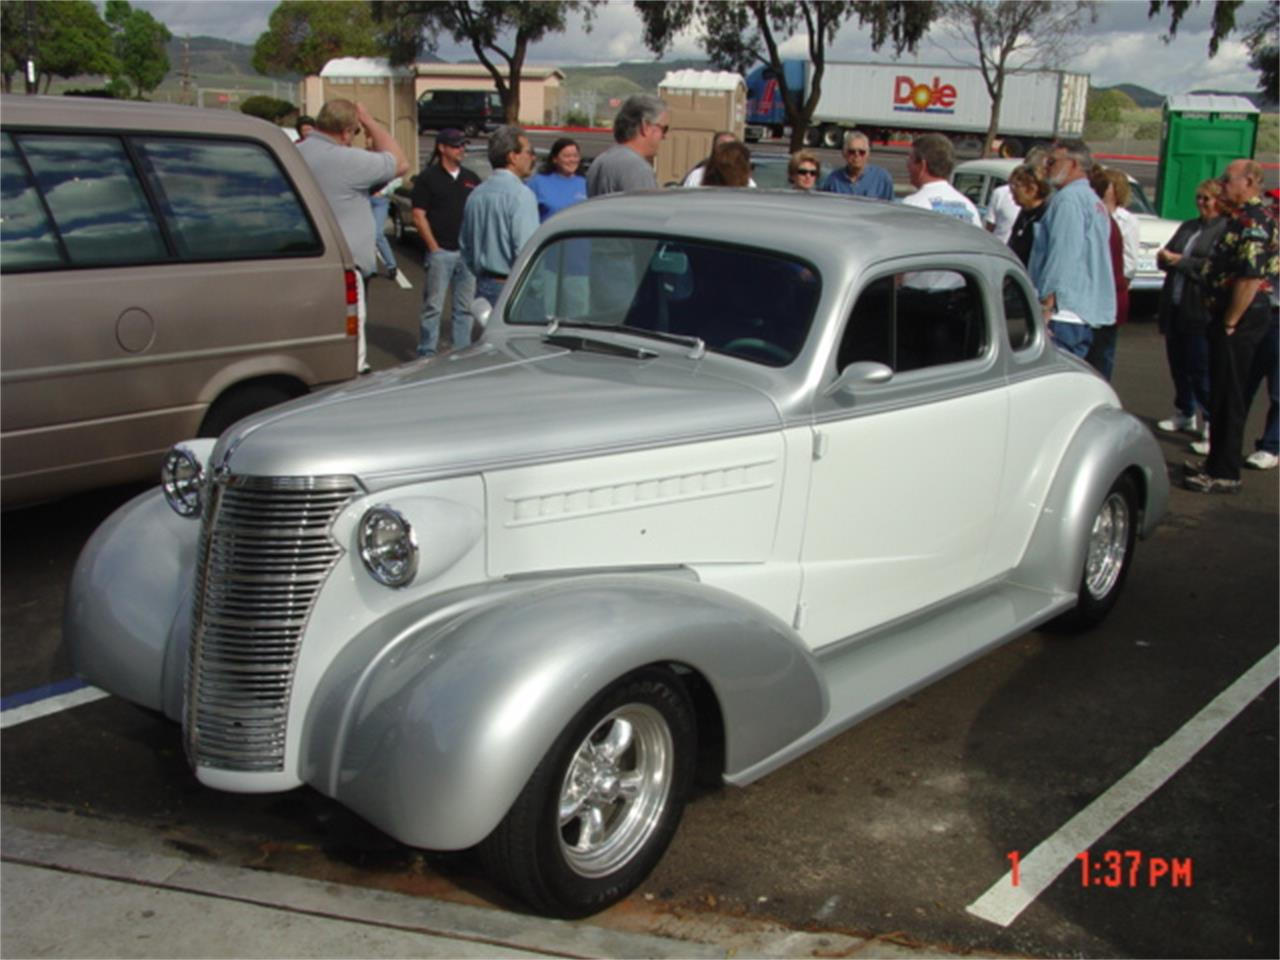 For Sale: 1938 Chevrolet Coupe in San Diego, California